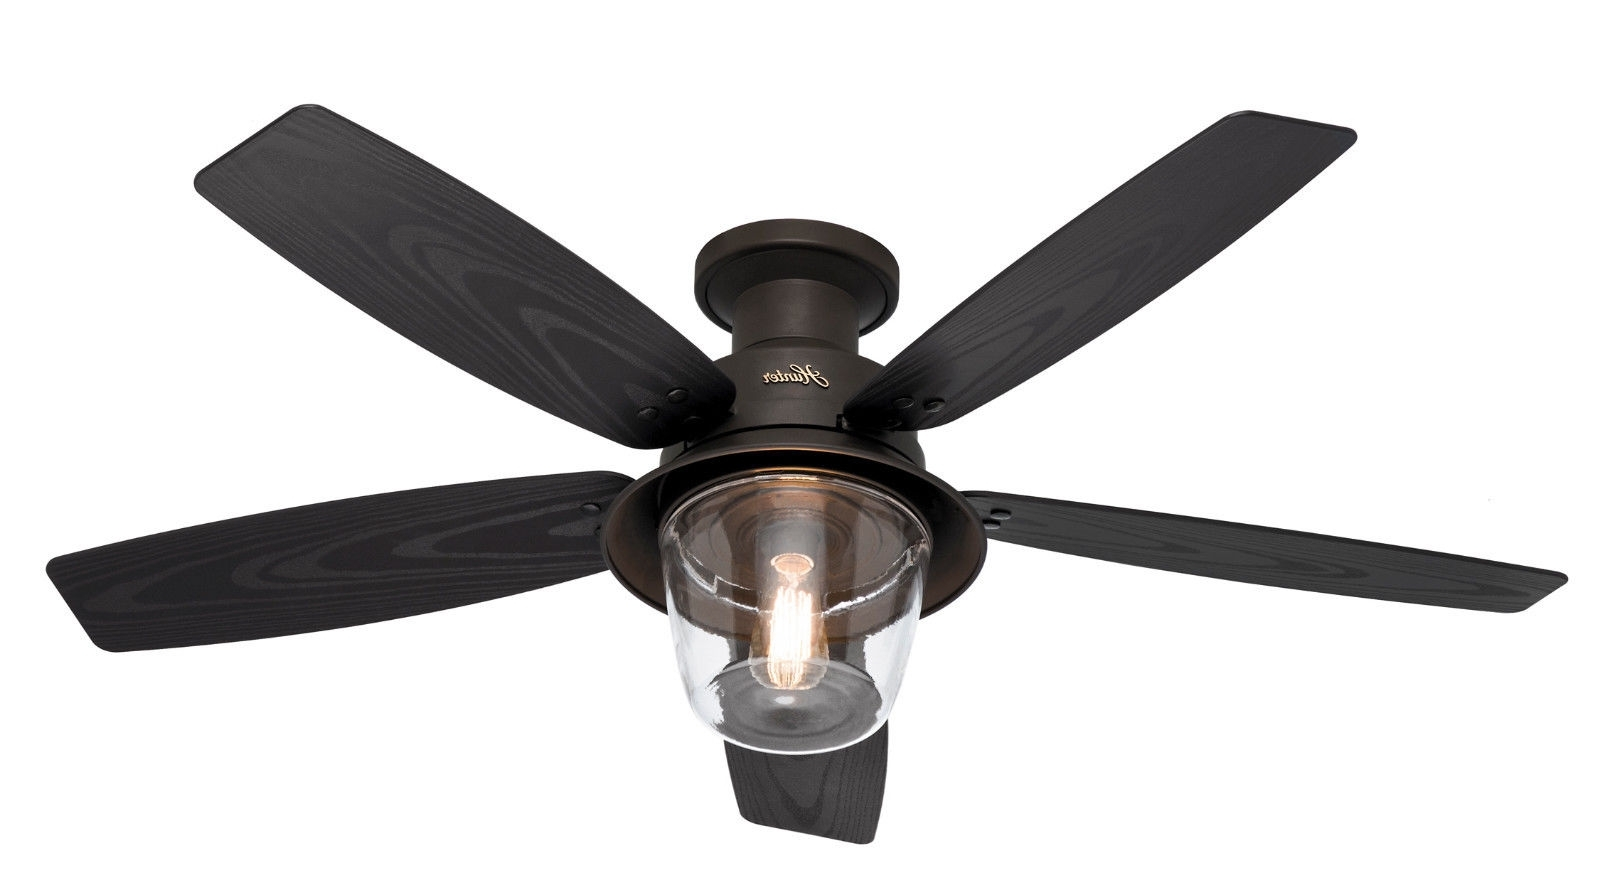 Best And Newest Ceiling Fan: Breathtaking Black Industrial Ceiling Fan Ideas Within Industrial Outdoor Ceiling Fans (View 10 of 20)